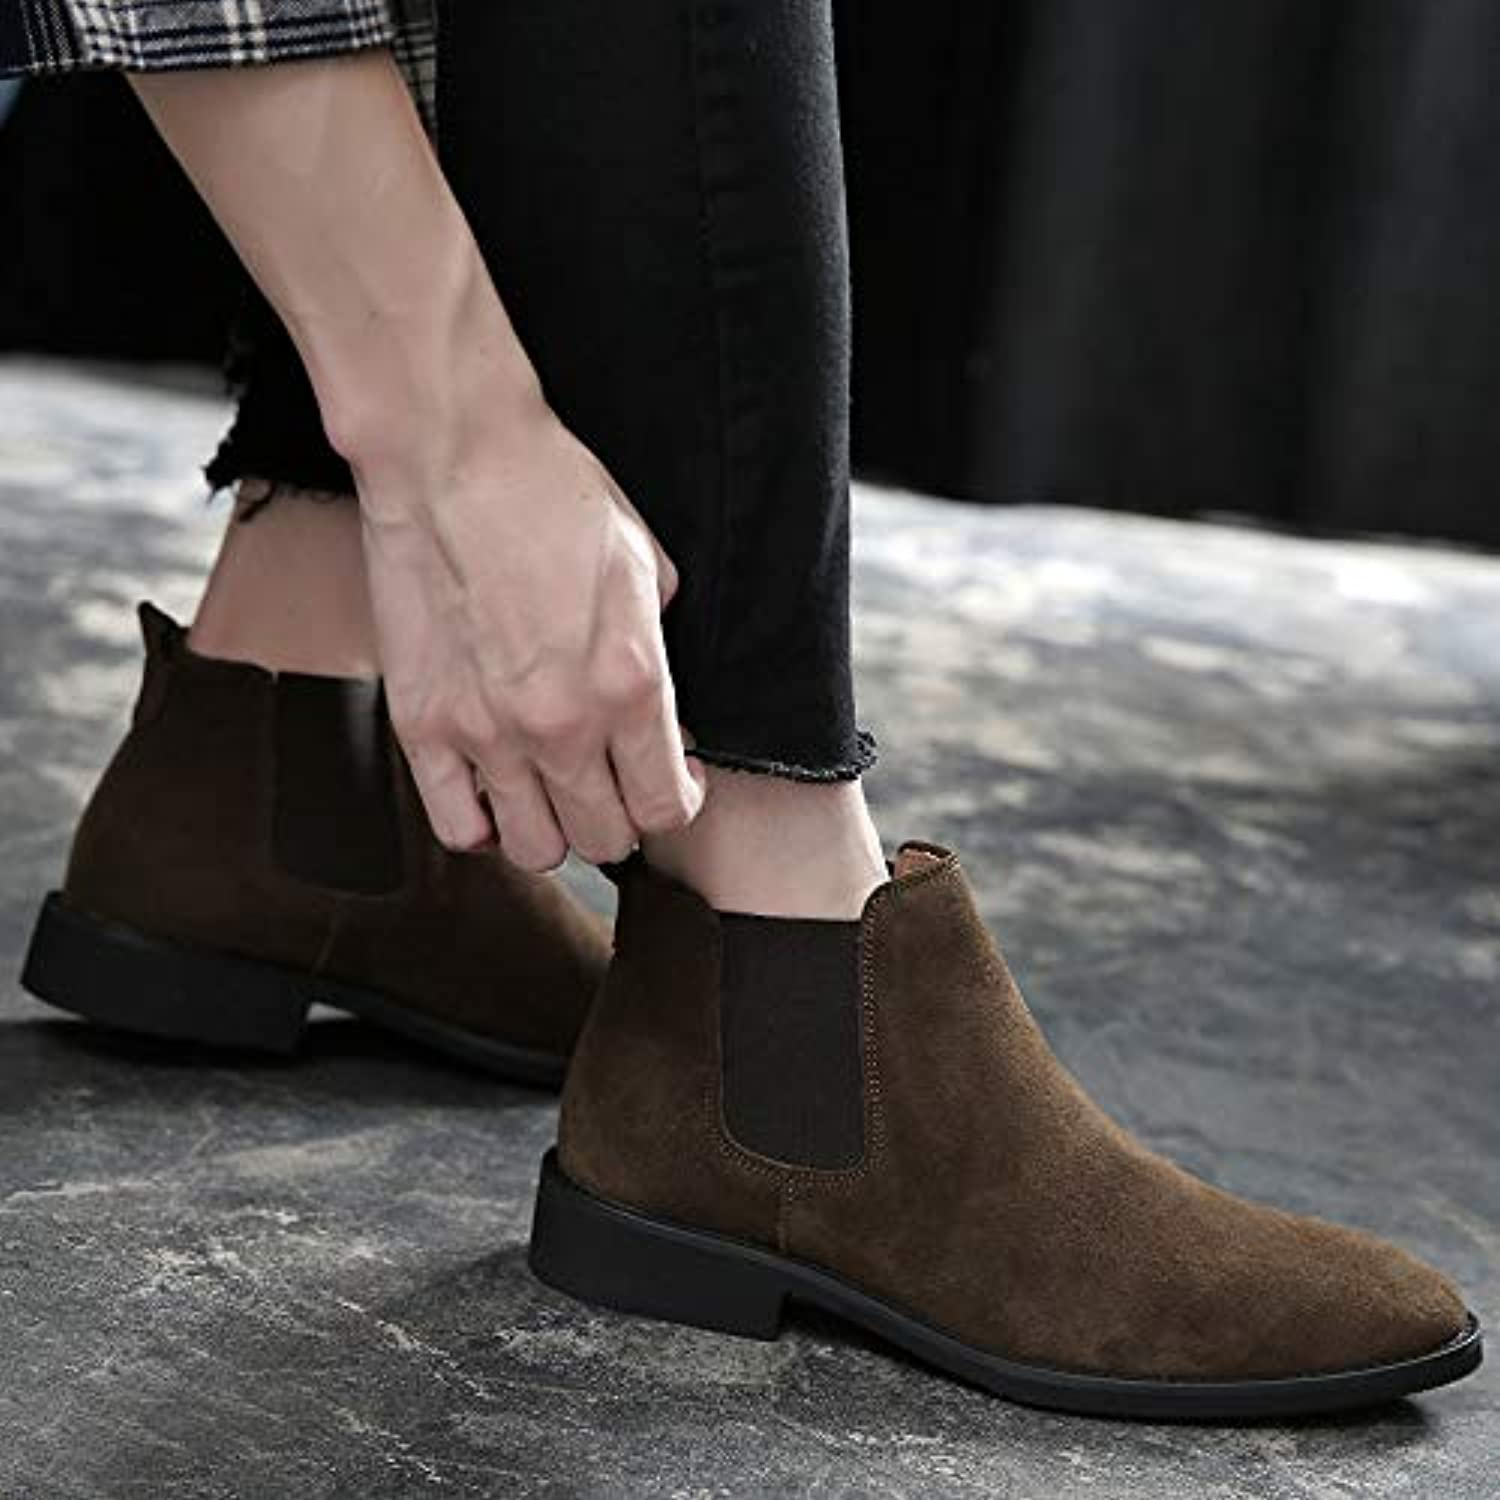 LOVDRAM Boots Men's Chelsea Boots Men'S Pu Pointed Boots In The Men'S Boots High Boots Martin Boots